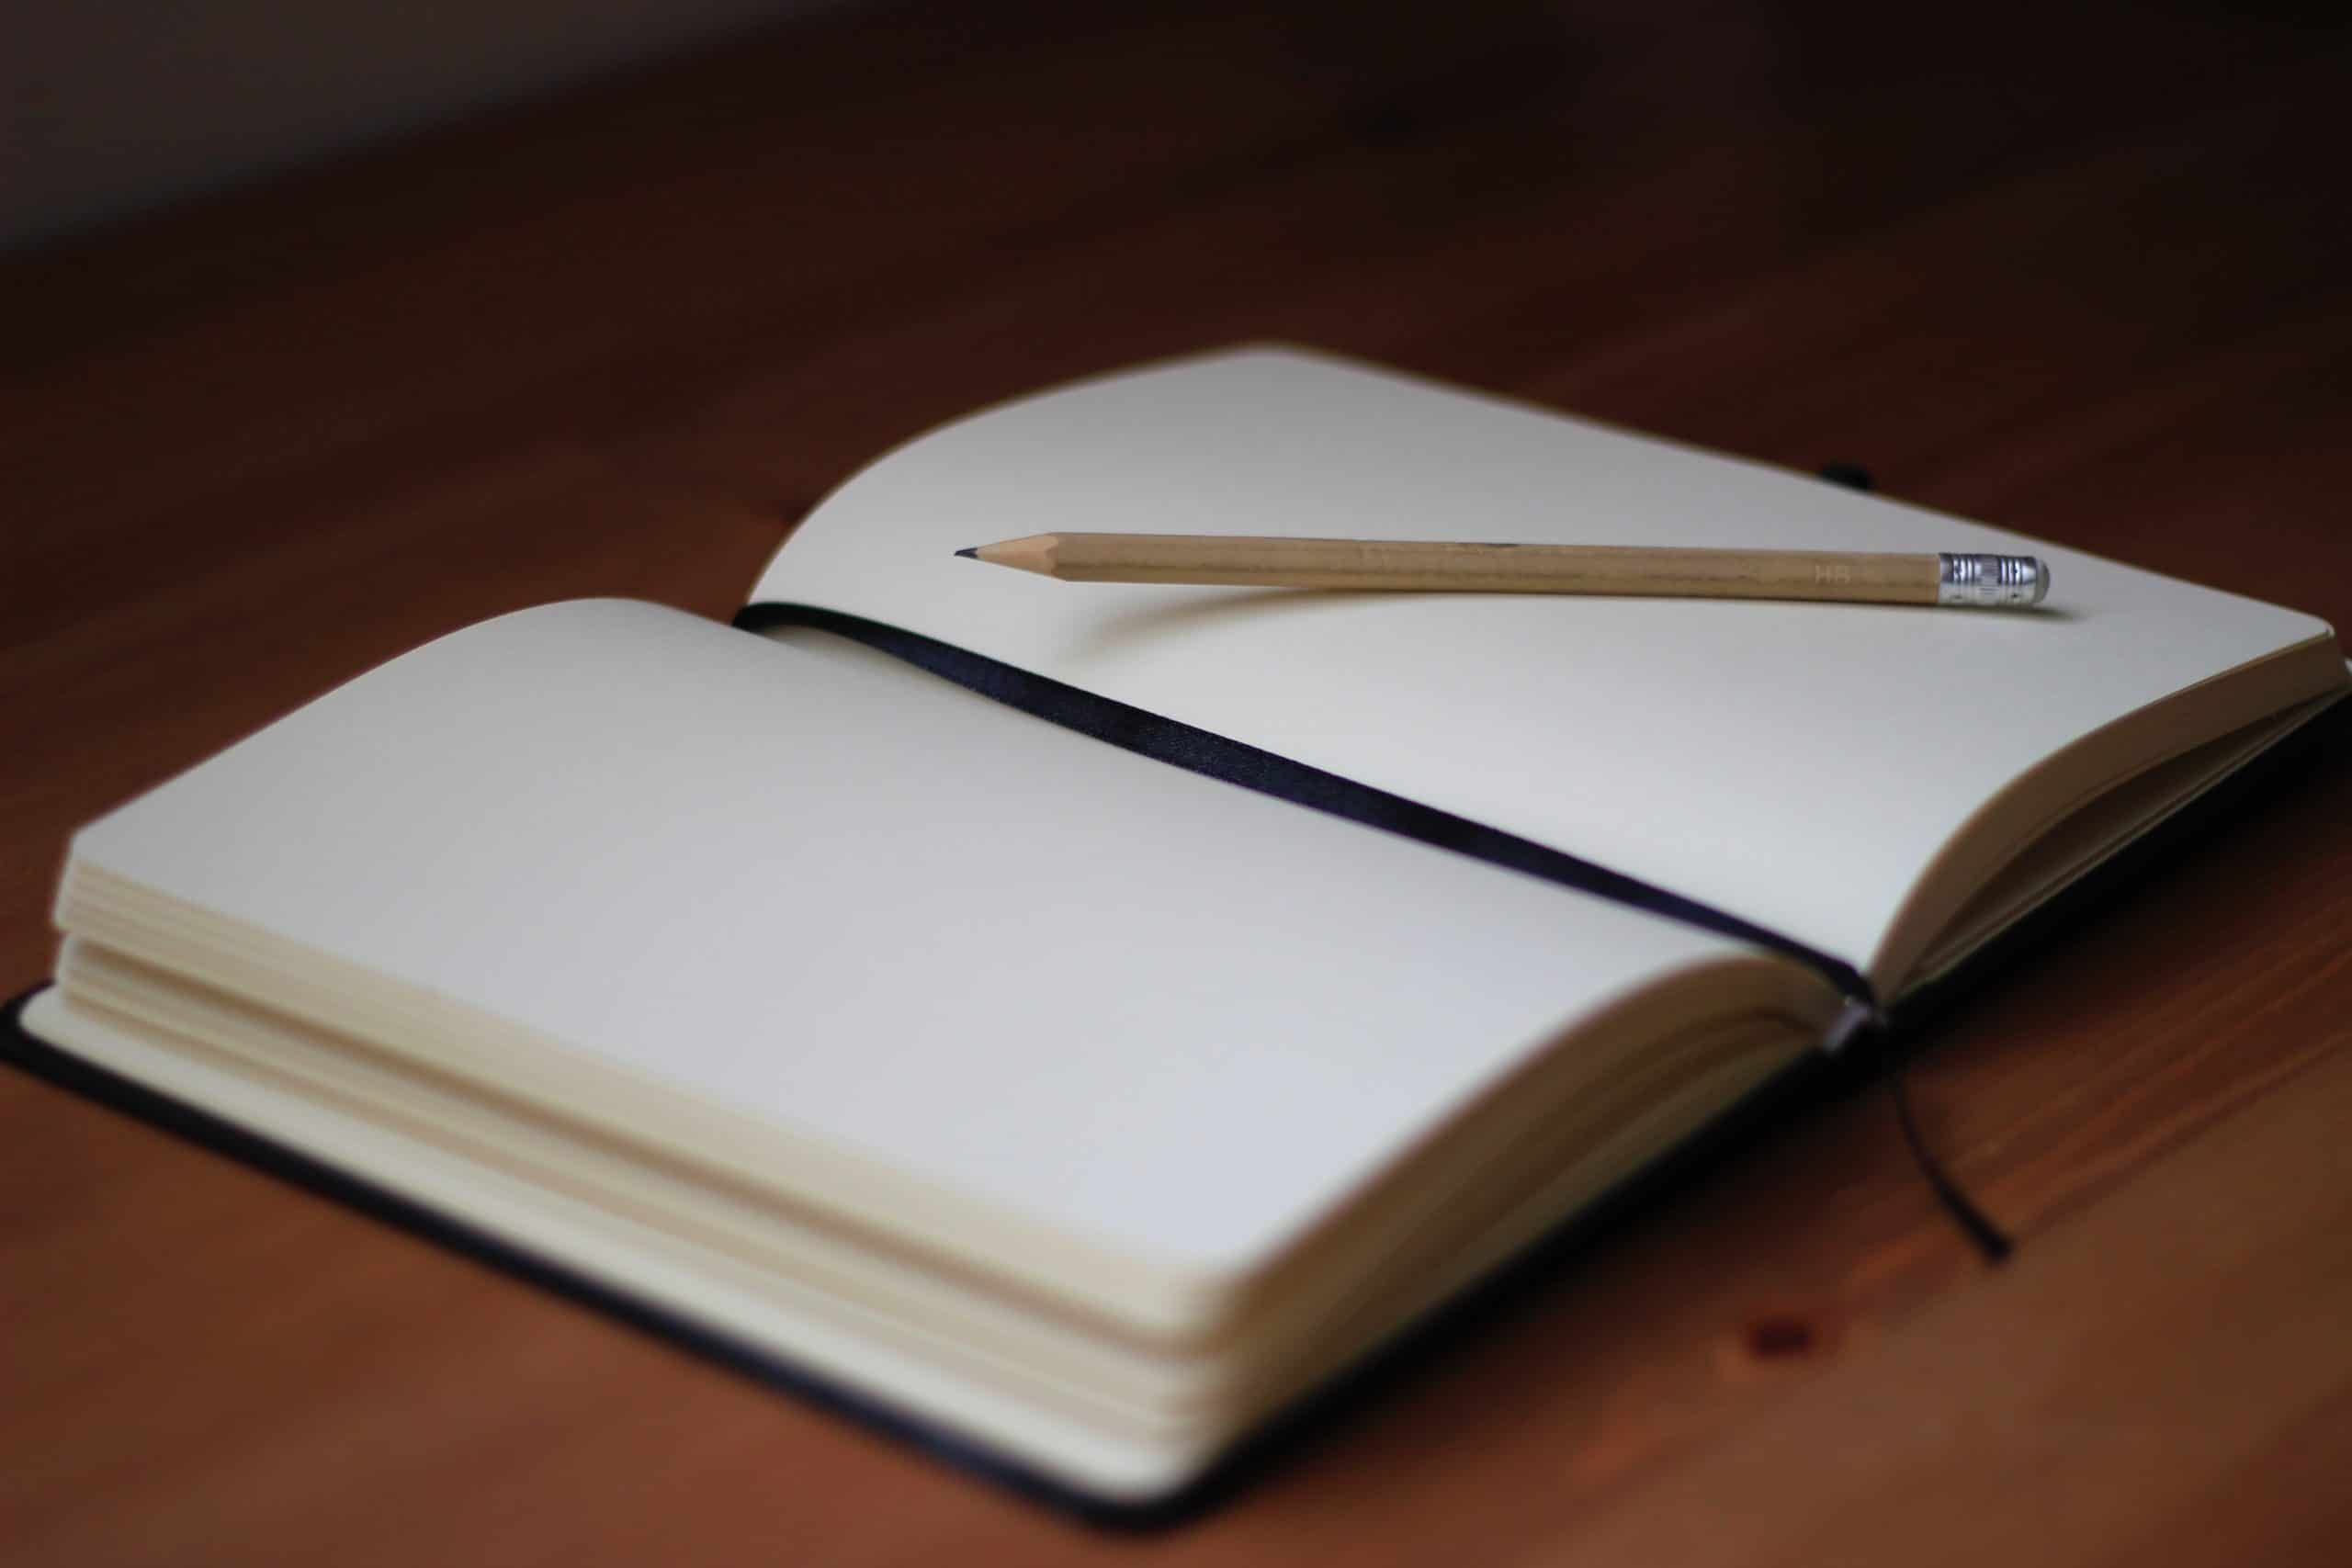 A picture of a notebook lying open on a blank page, with a pencil resting on the page